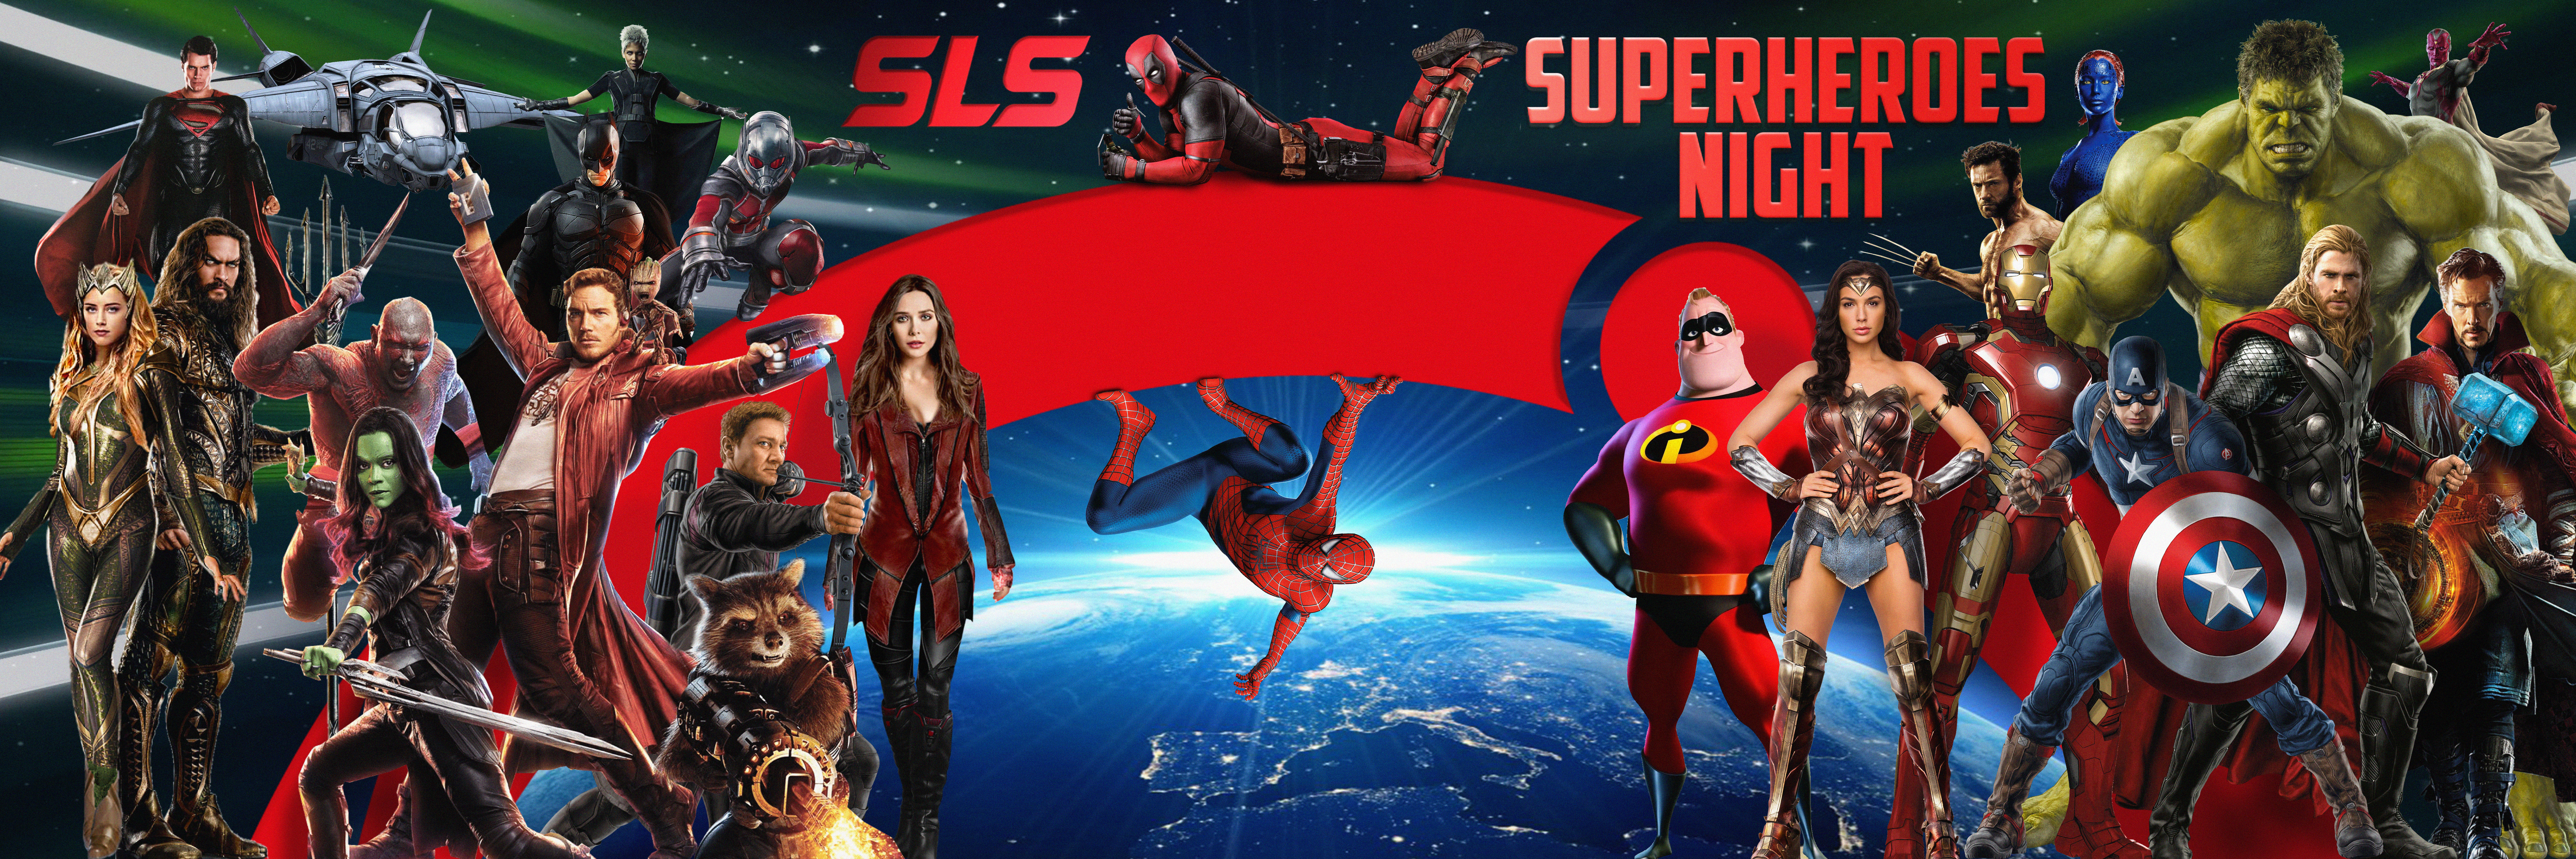 Image shows a poster of Superheros Night with different superhero characters in the background